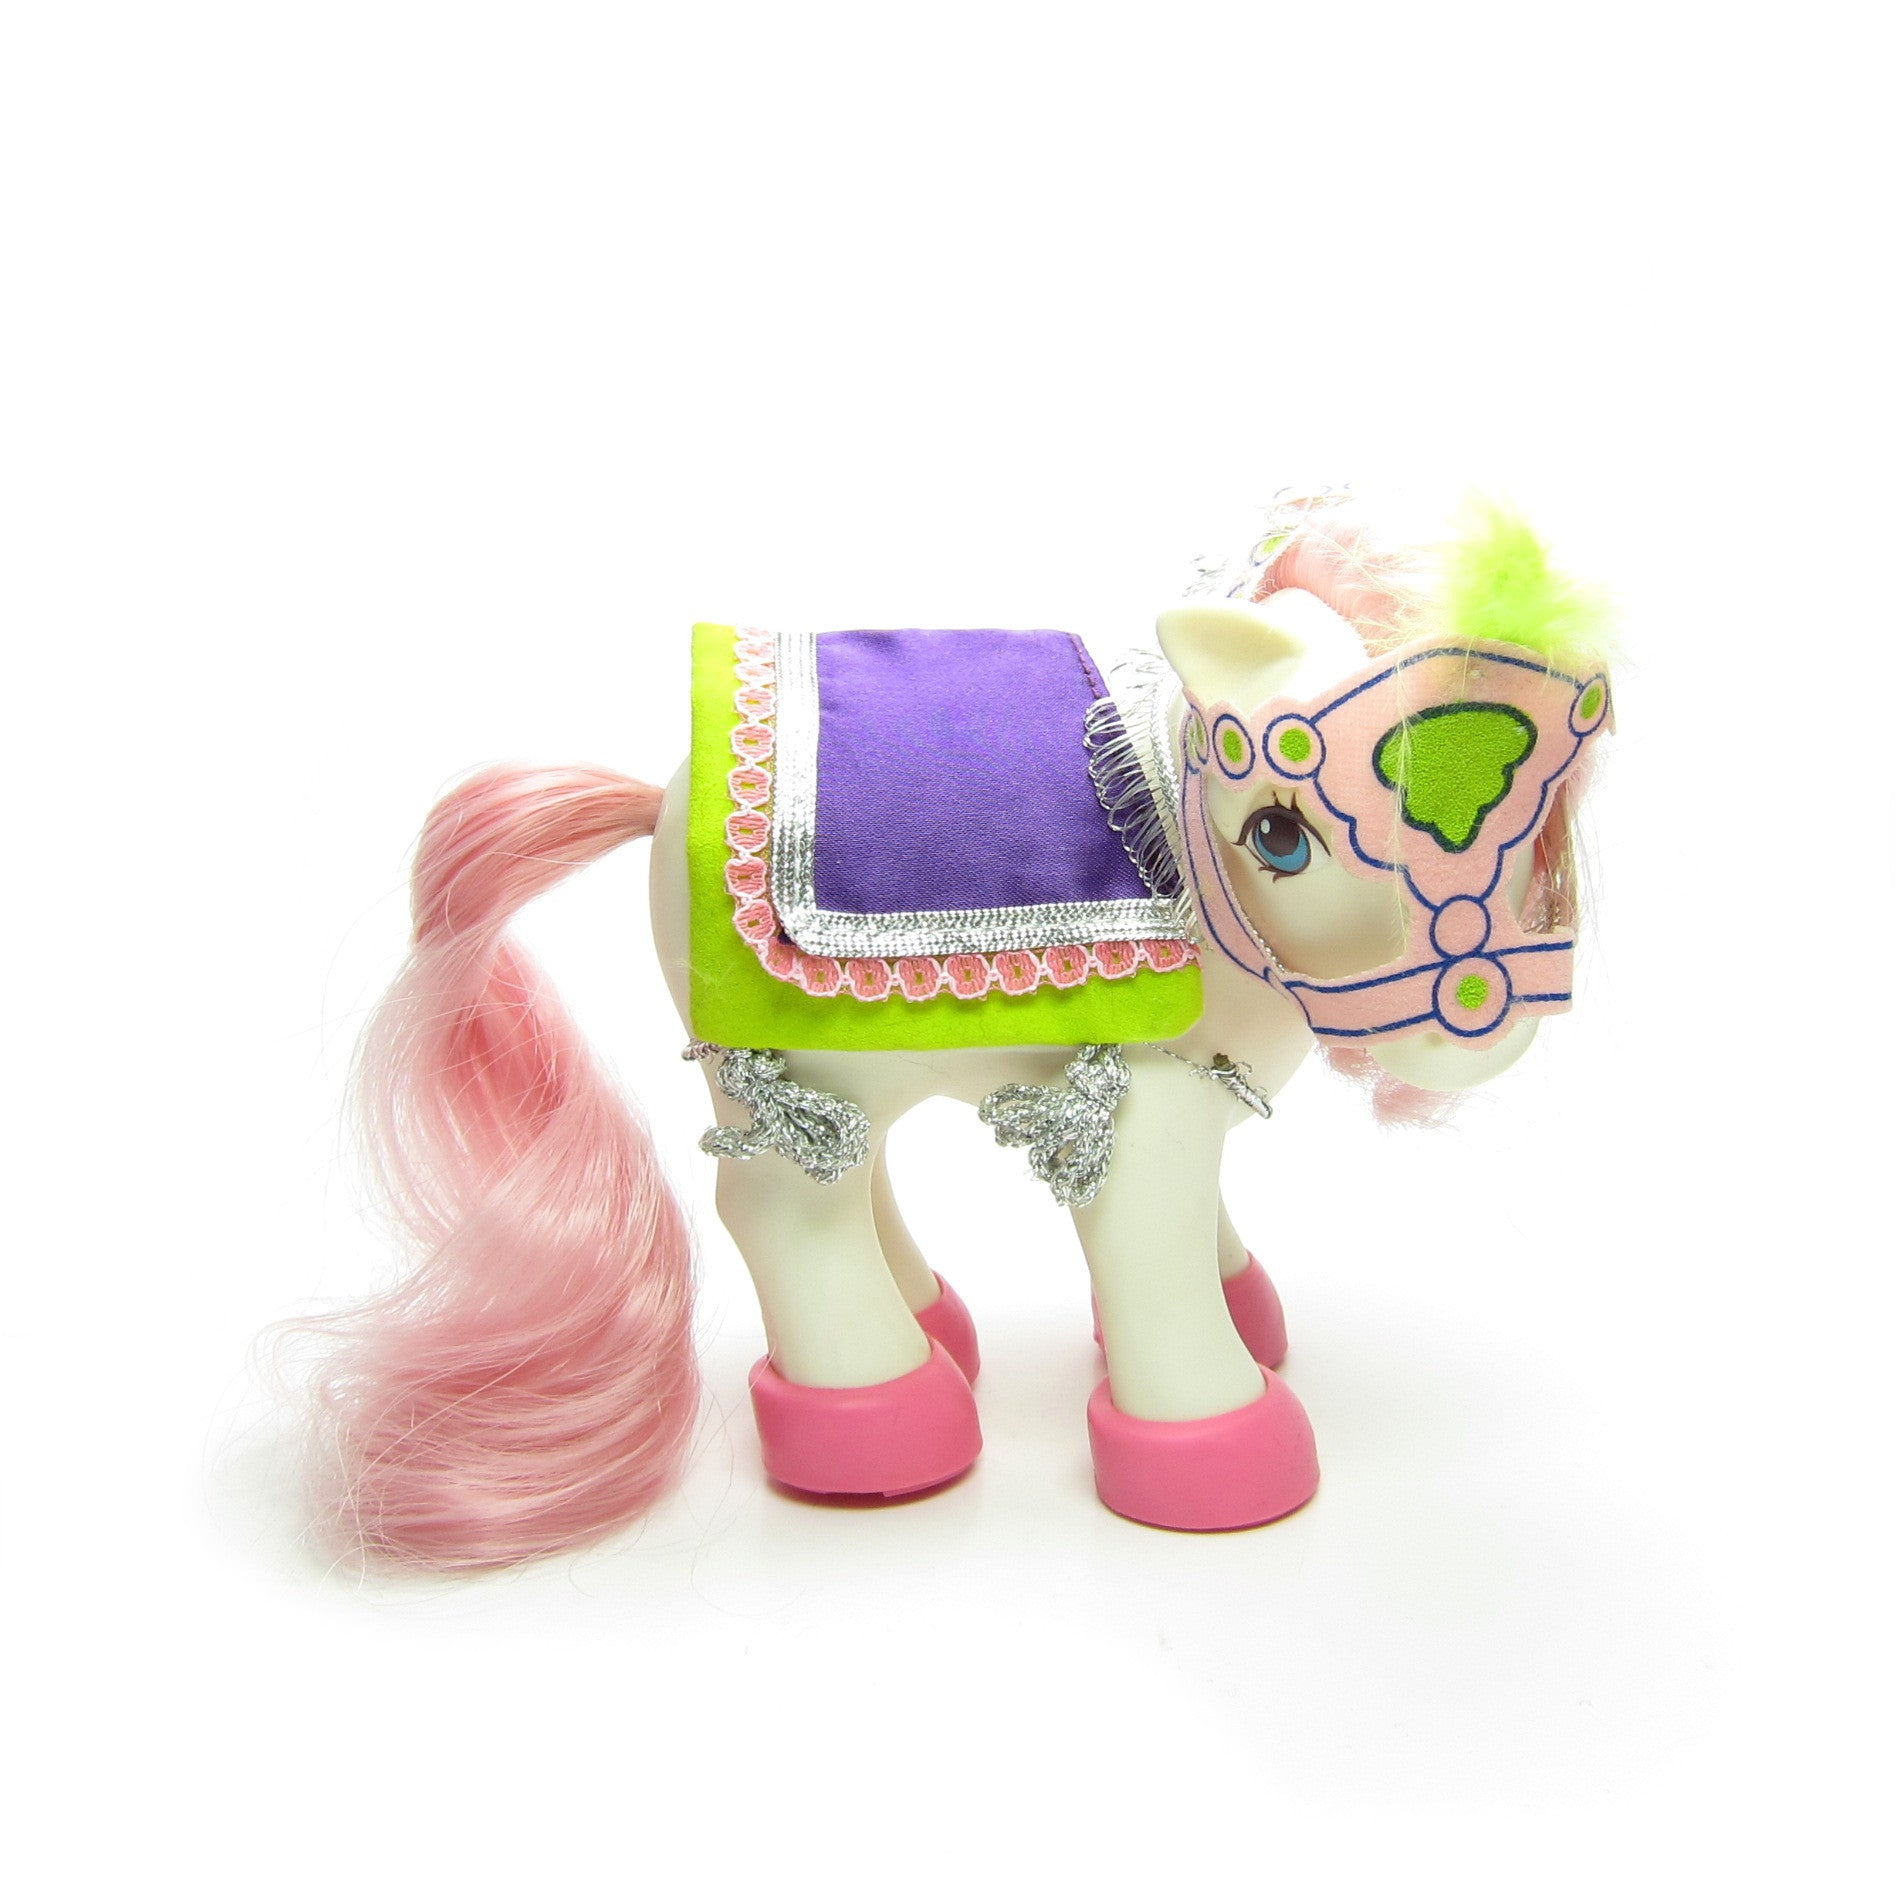 My Little Pony Parade Pizzaz Pony Wear outfit